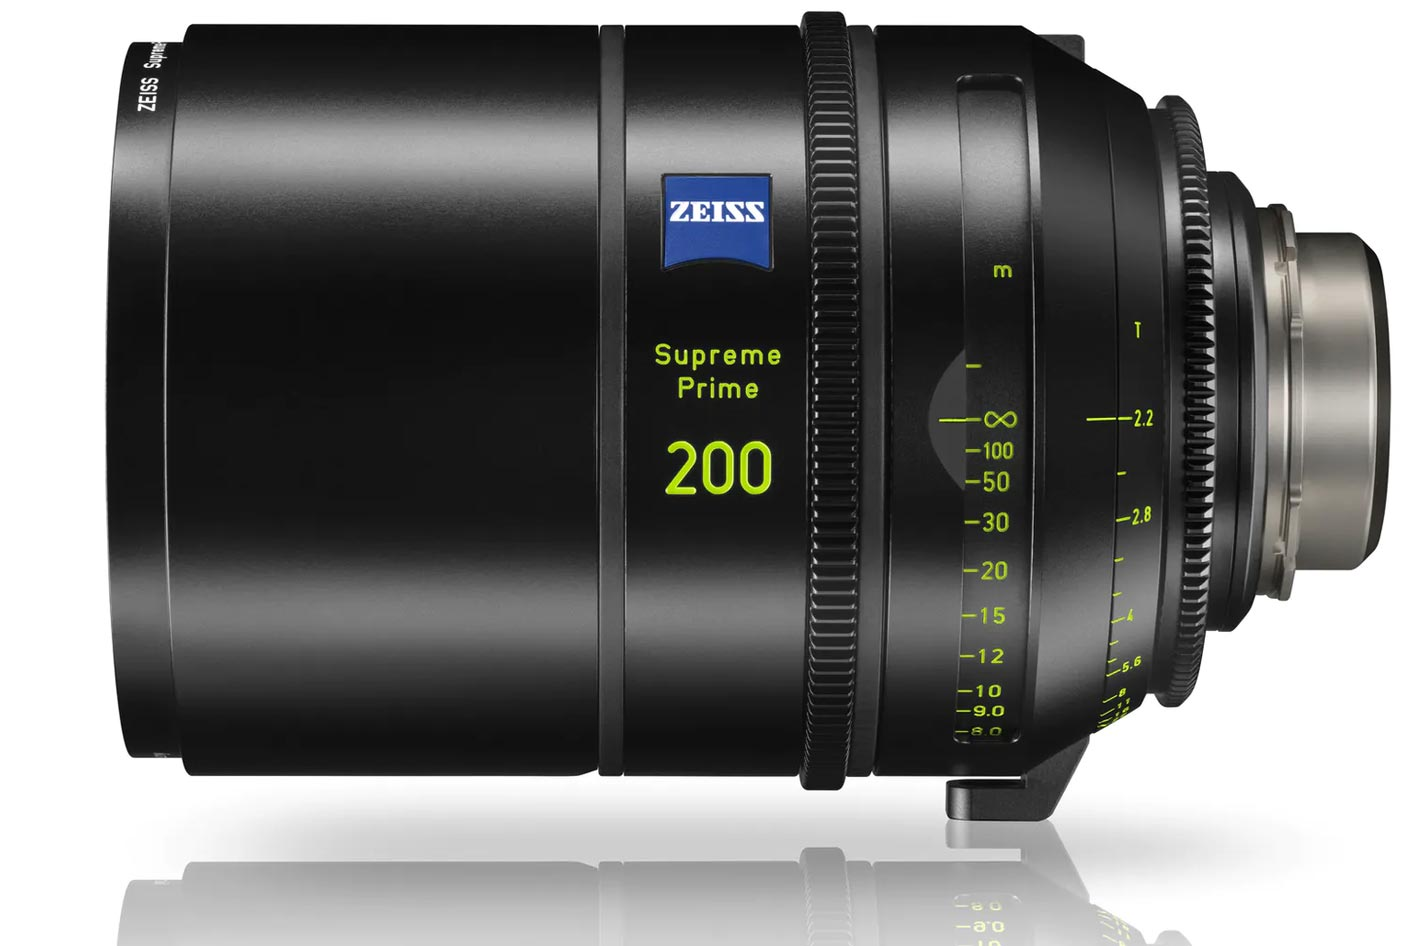 New Supreme Prime lenses at the ZEISS Virtual Cine Expo